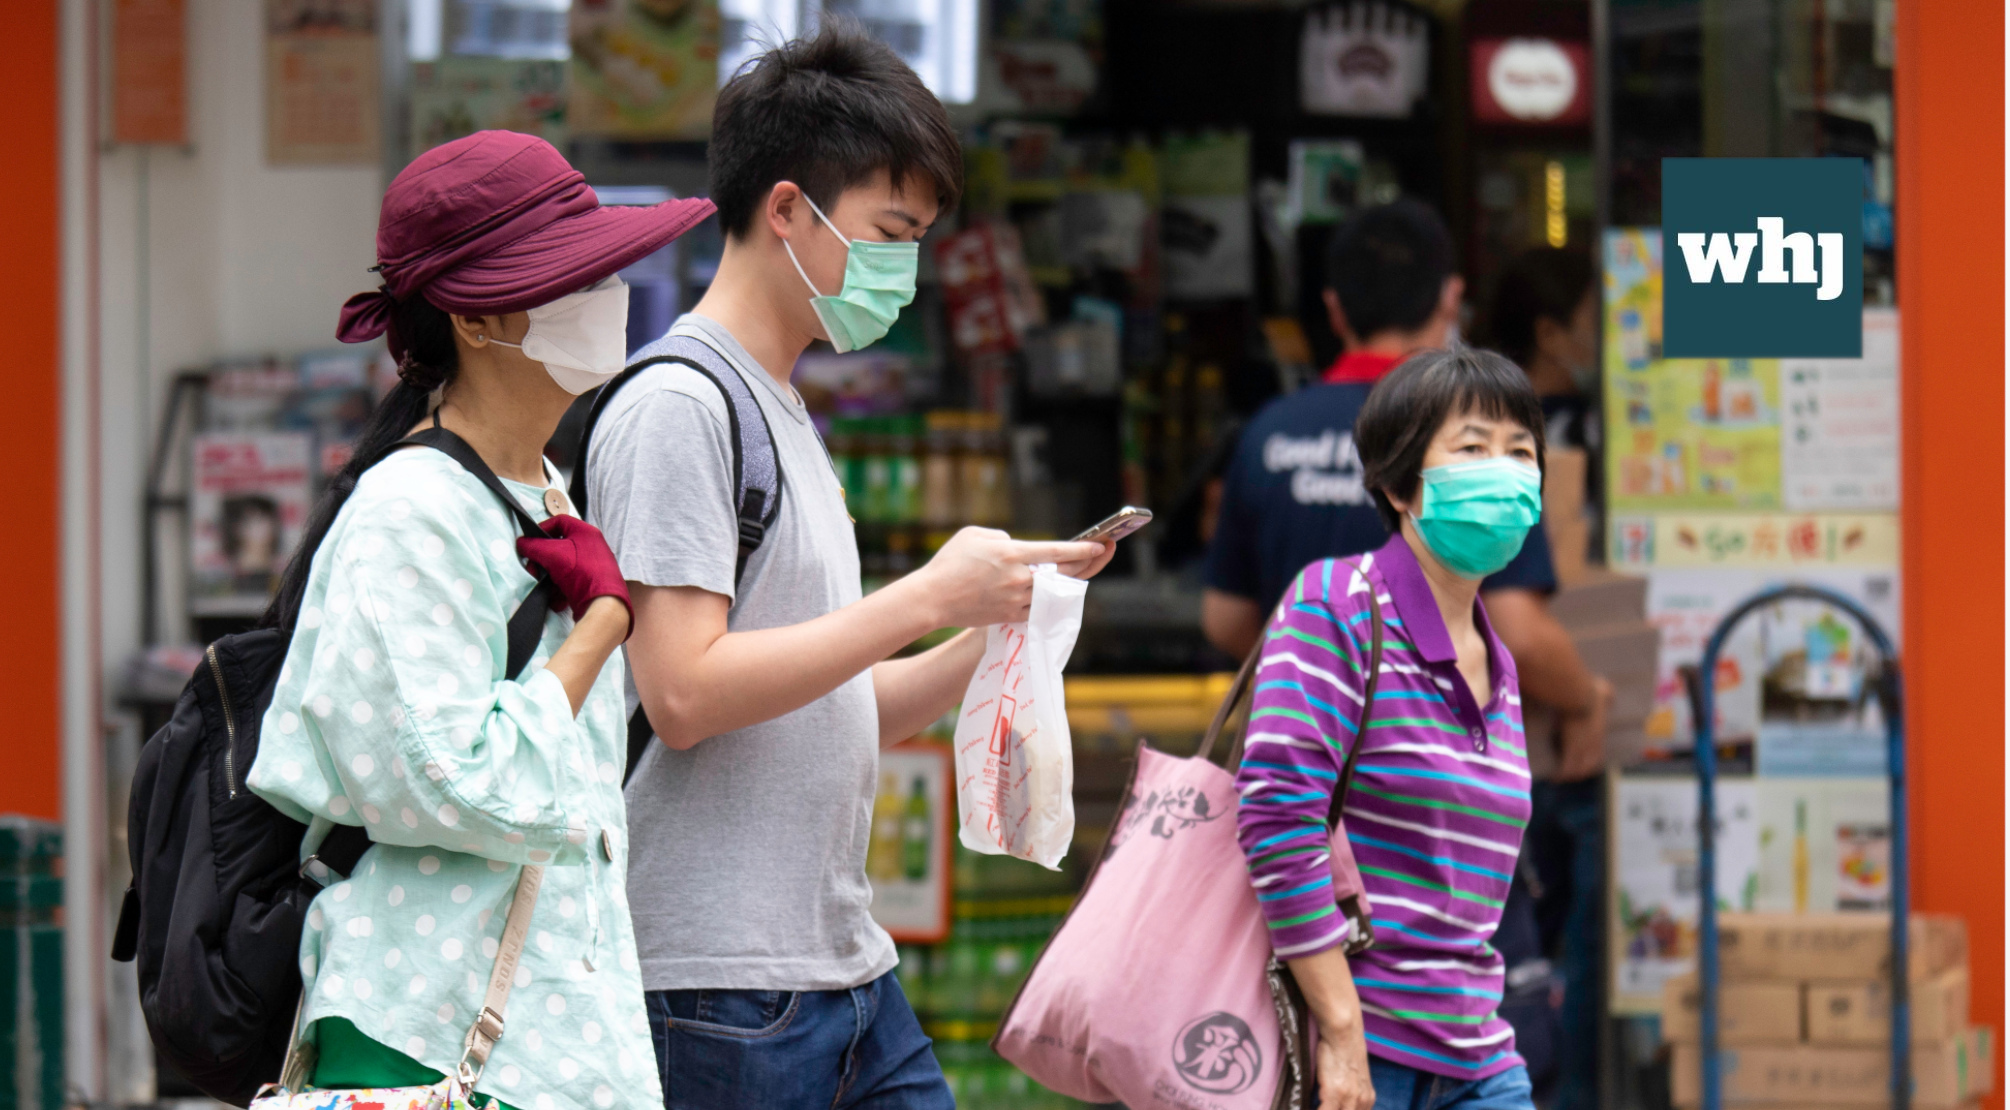 Third wave of coronavirus in Hong Kong - social distancing measures to be extended